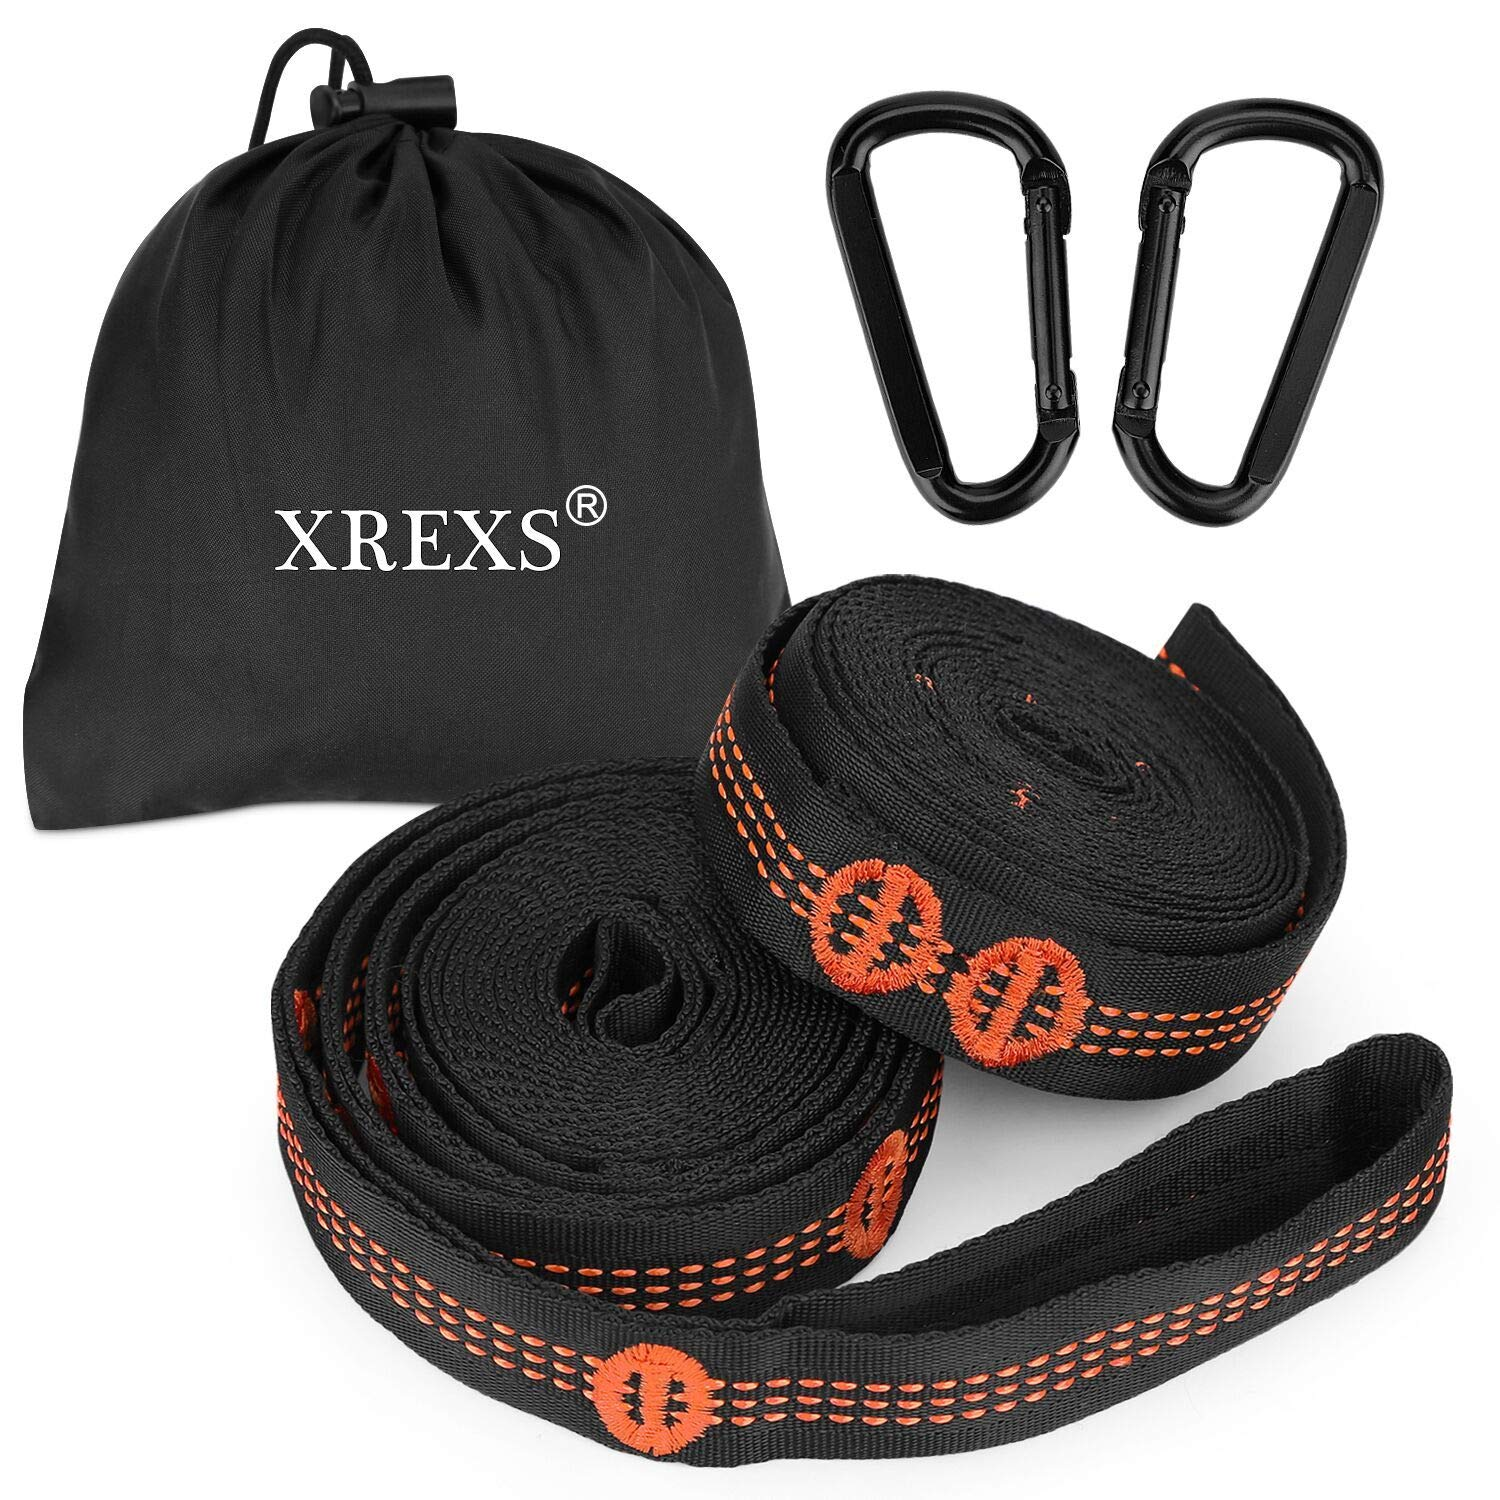 XREXS Outdoor Camping Hammock Straps Accessories Multi-function Hammock Straps, Hammock Tree Hanging Straps, 10 Rings Children's Garden Swing Rope Tied Nylon Straps Holds up 200KG